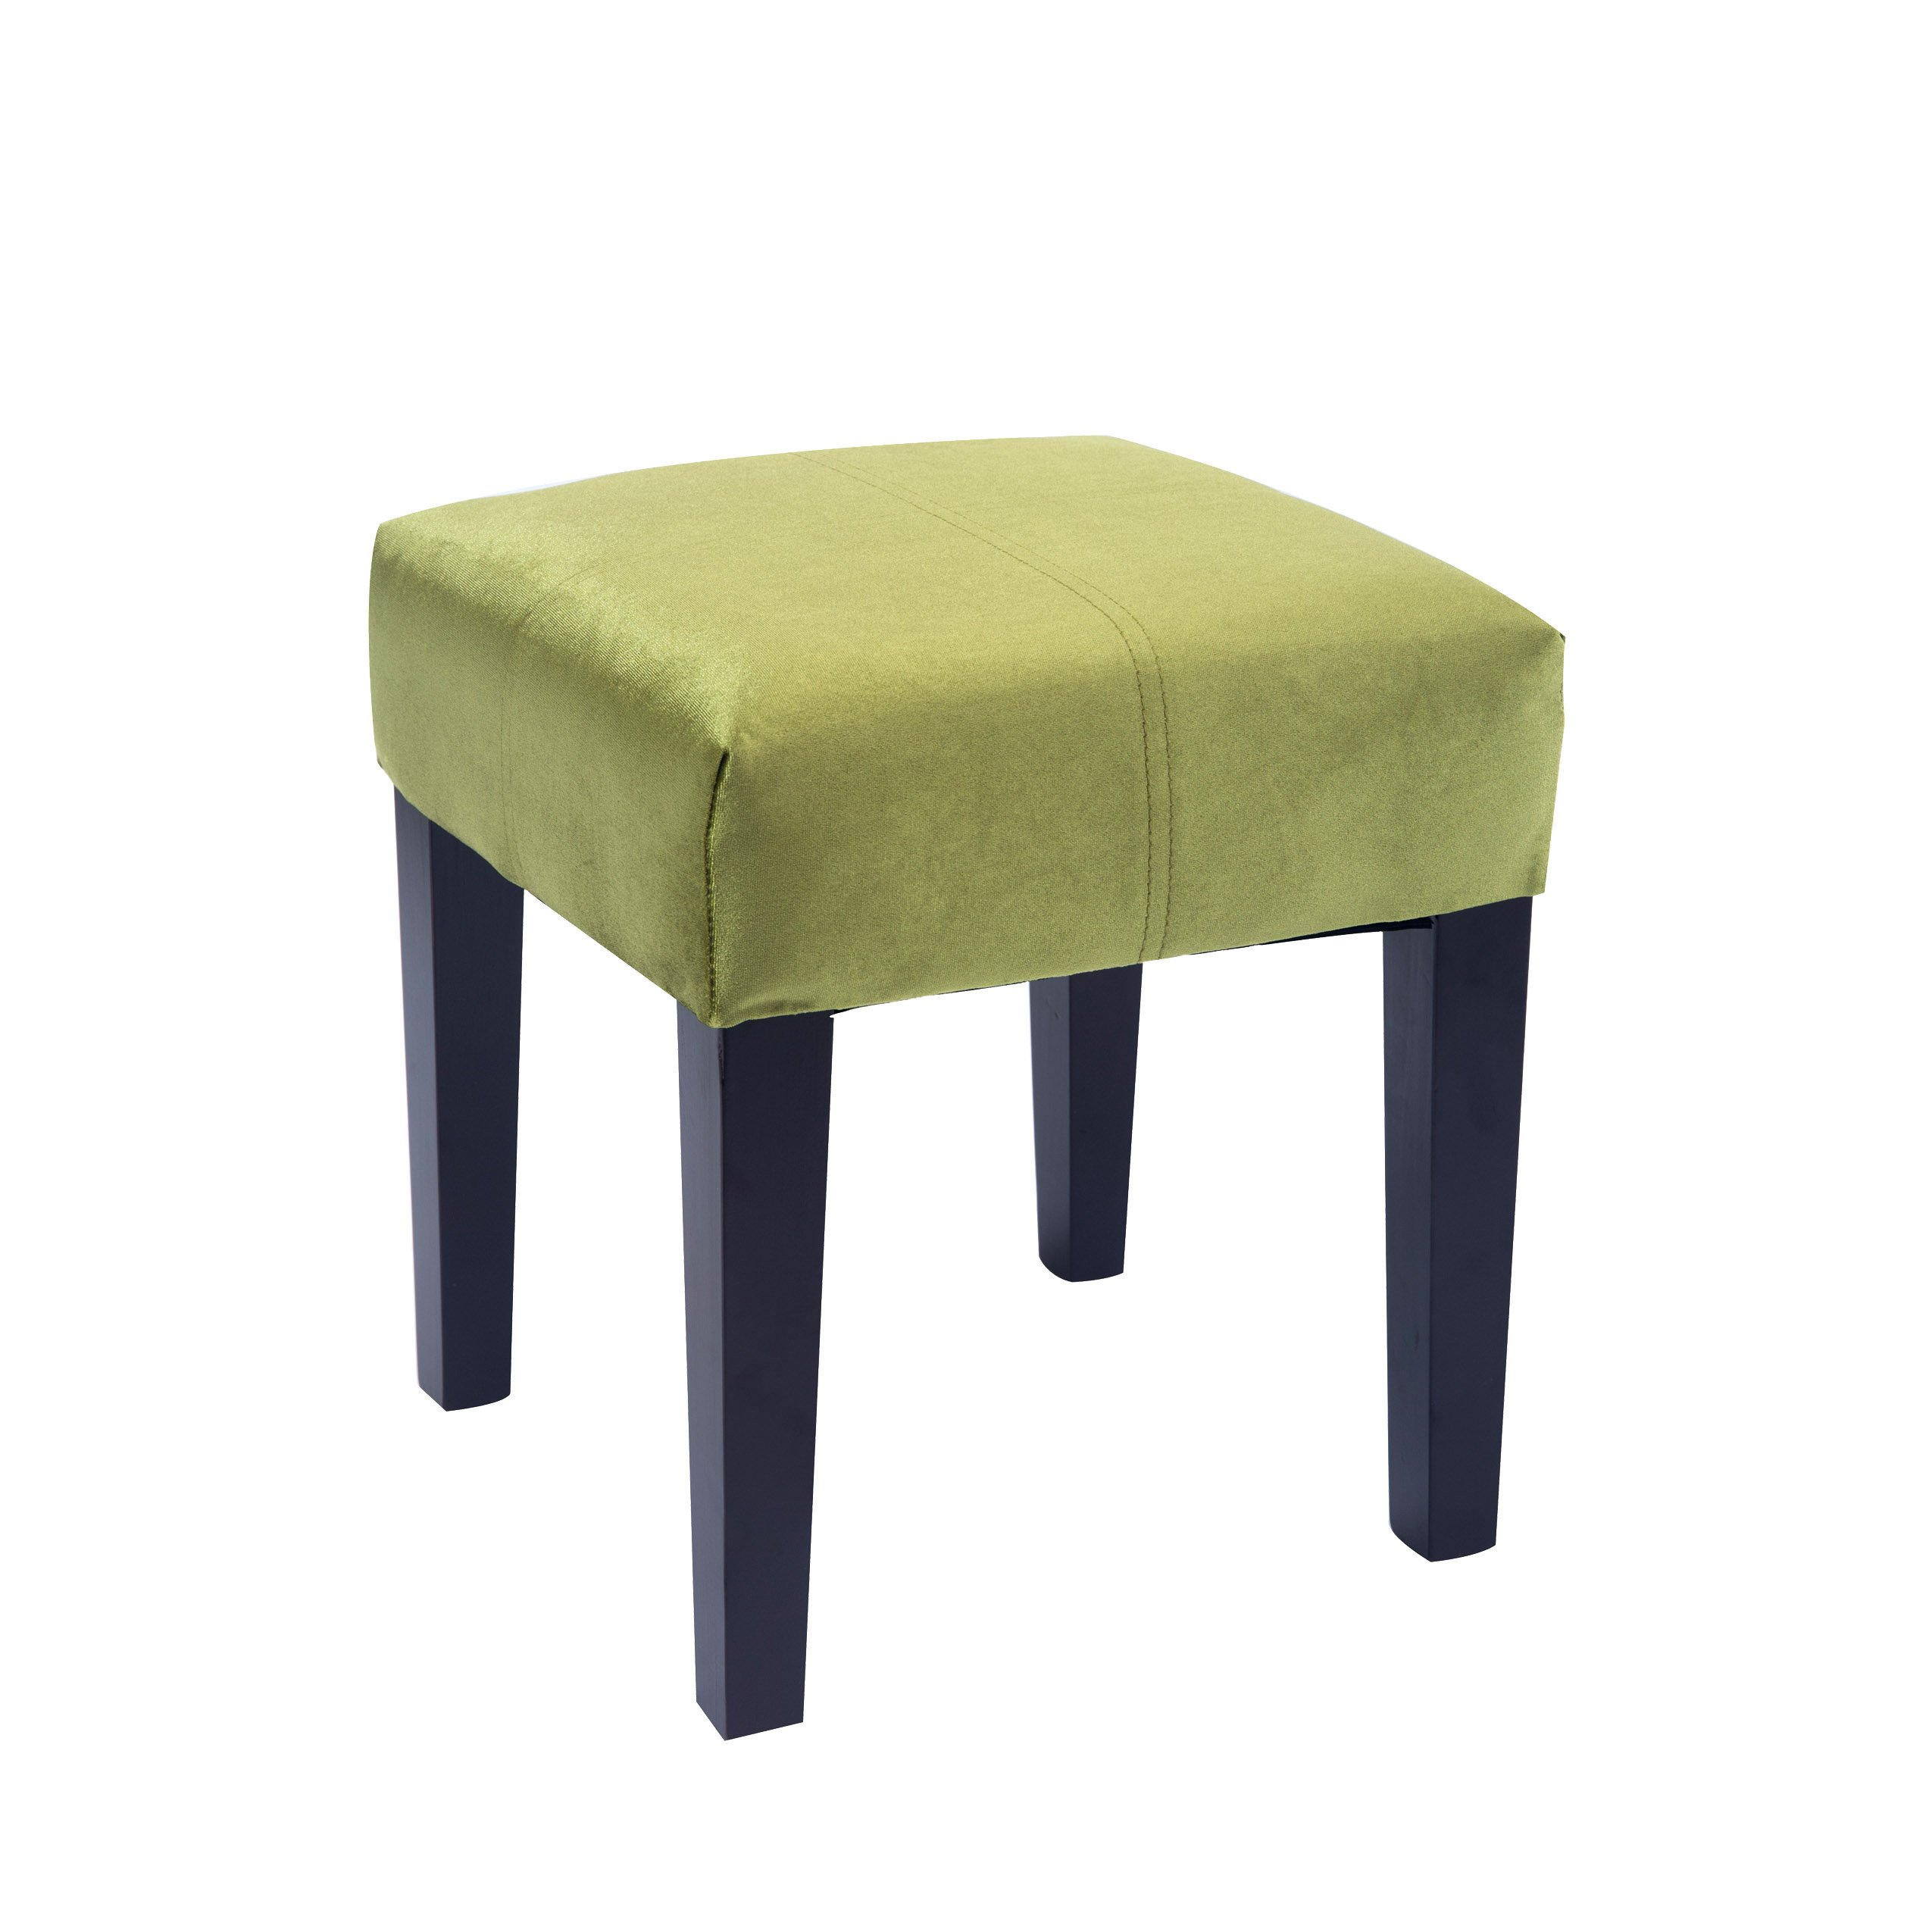 CorLiving Antonio Lad-248-O 16'' Square Ottoman Bench Footrest Velvet with Solid Wood Legs, Green